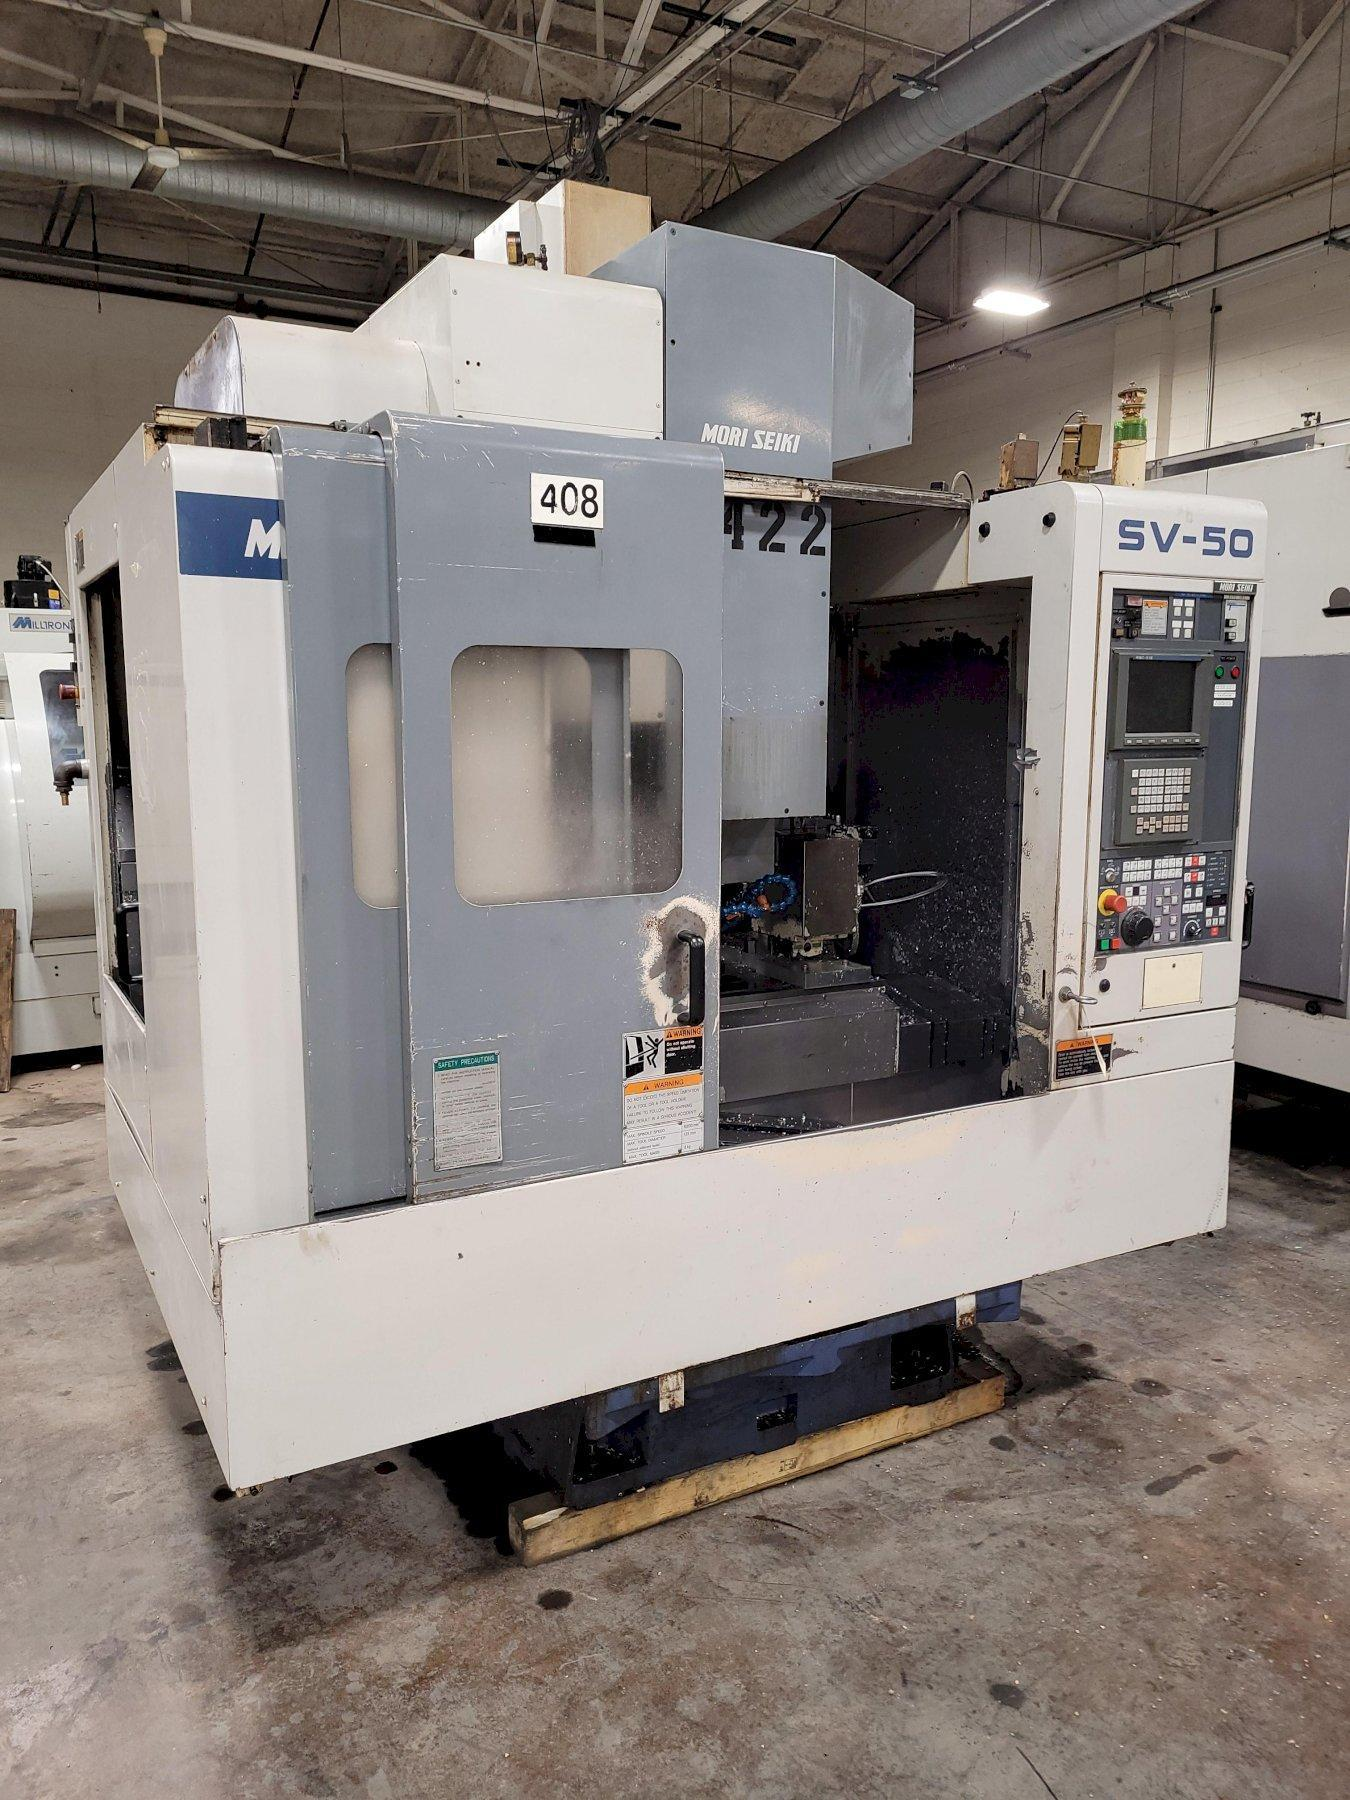 Mori Seiki Model SV-50 4-Axis Vertical Machining Center